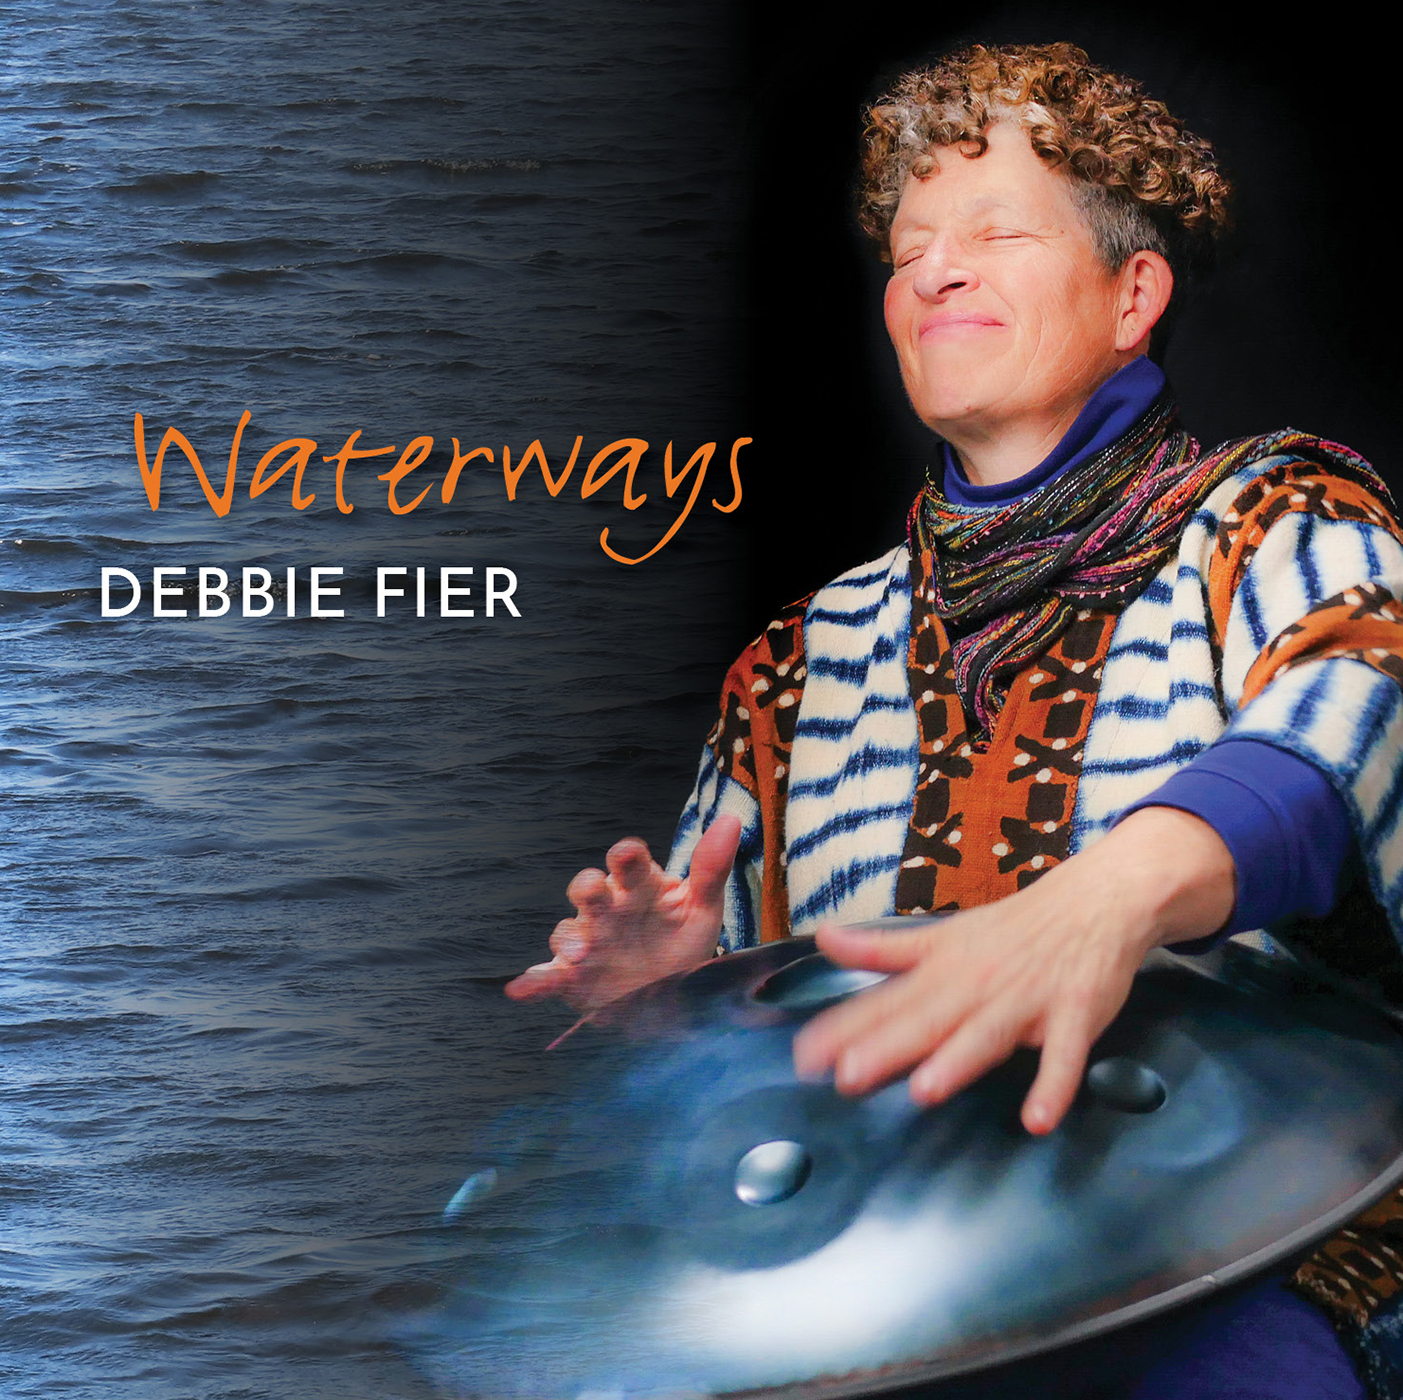 Debbie Fier, Waterways